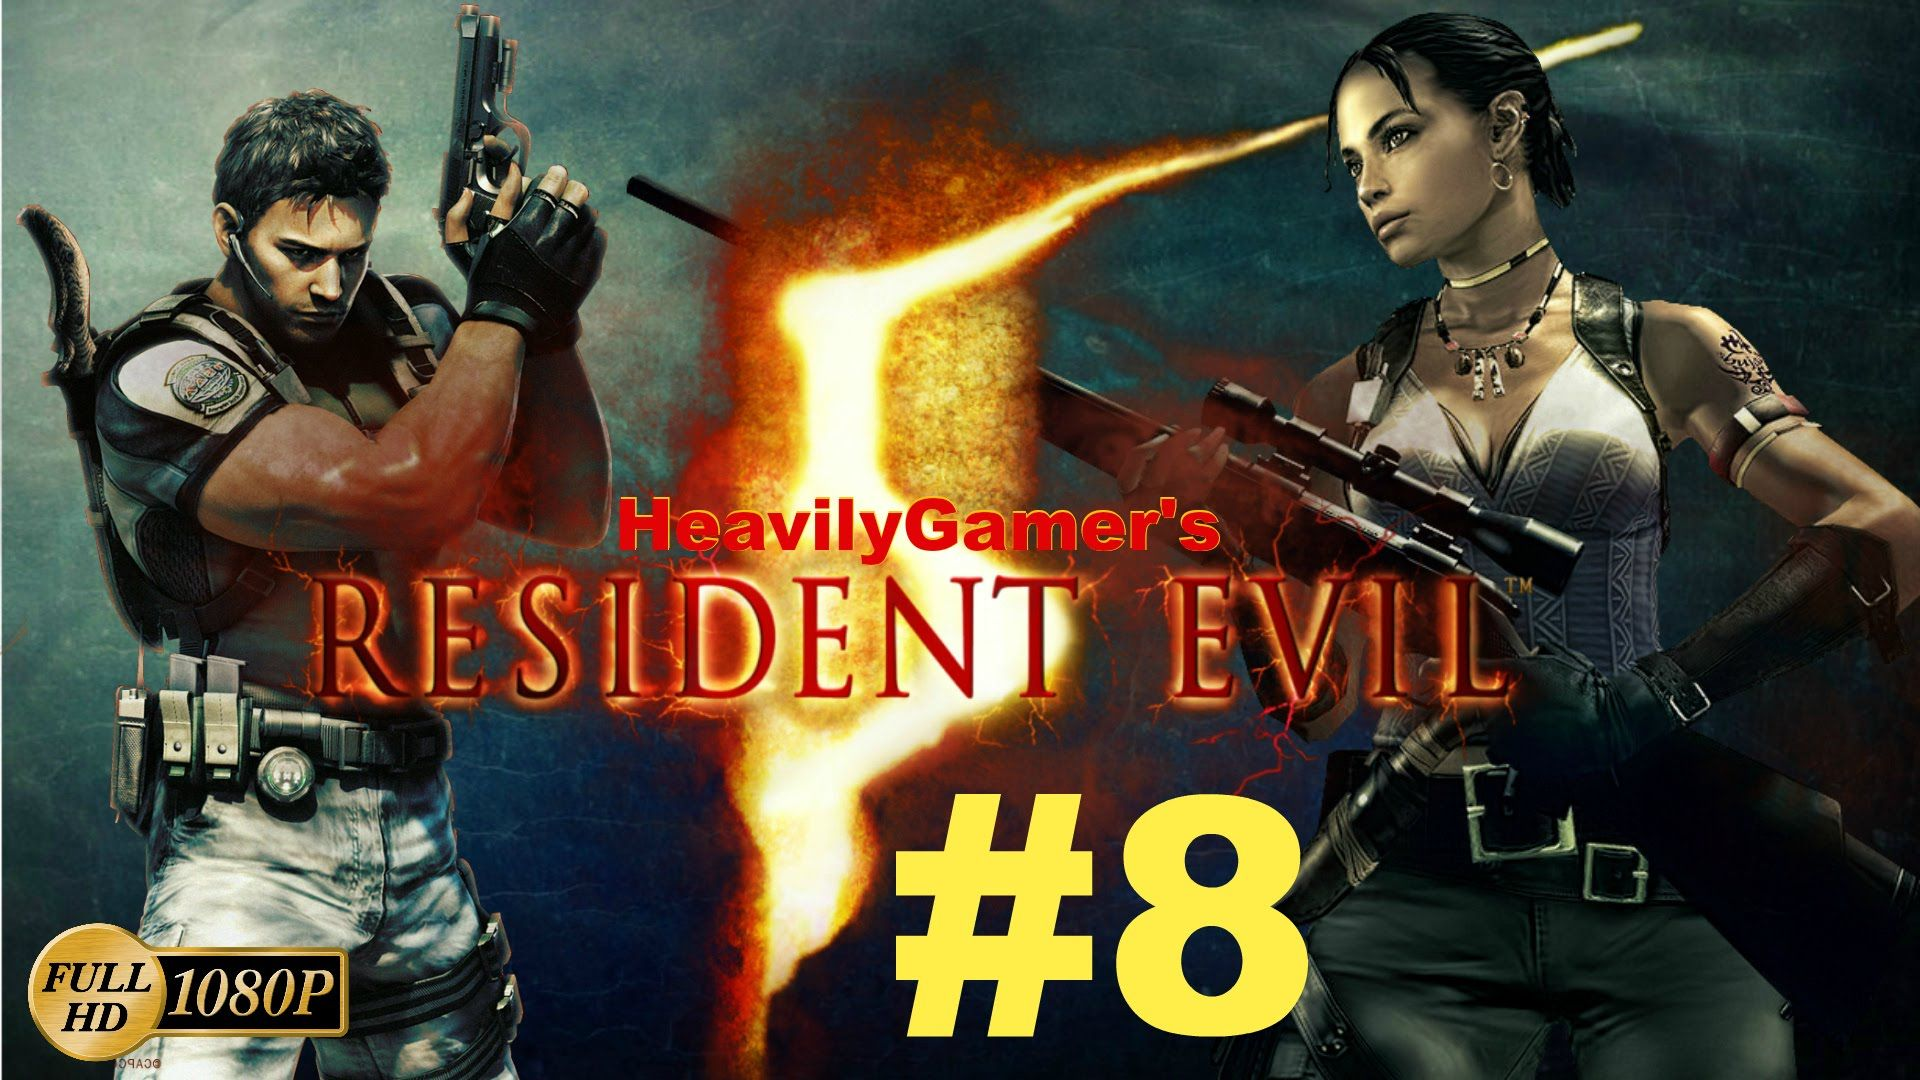 Resident Evil 5 Pc Gameplay Walkthrough Part 8 Caves Lara Croft